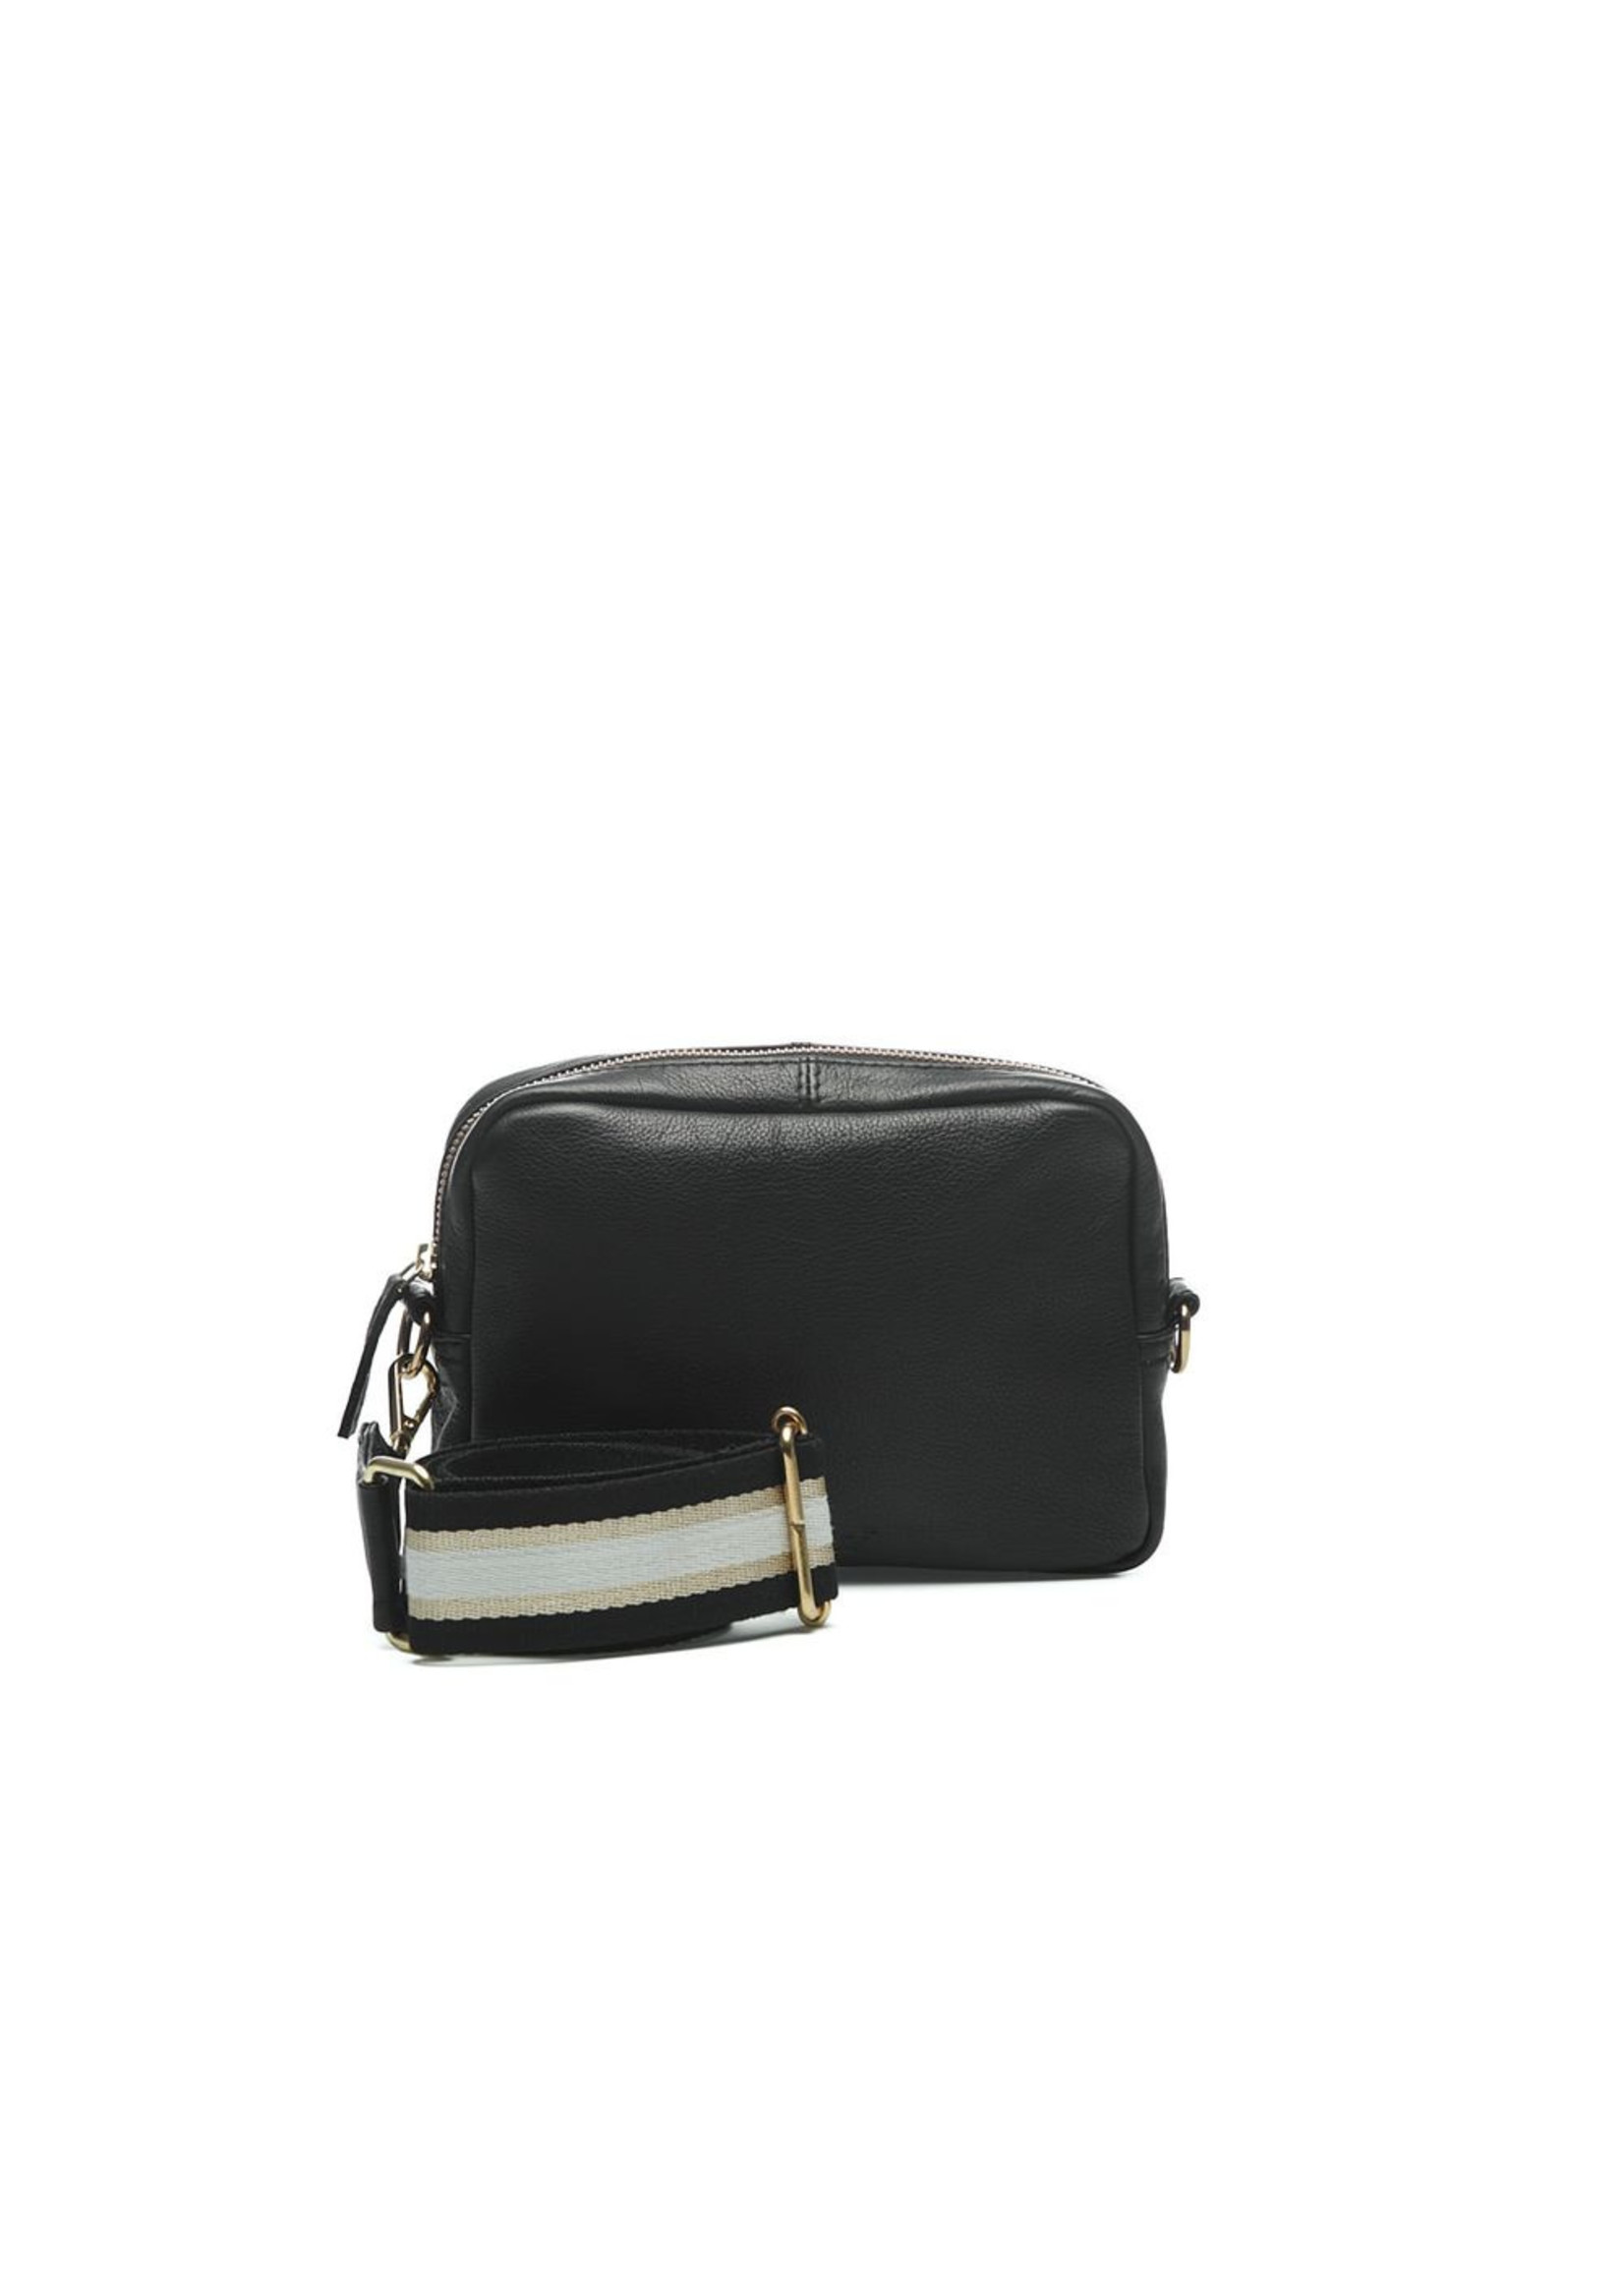 Chabo Bags Band Wit - Goud Strap Wit - Goud